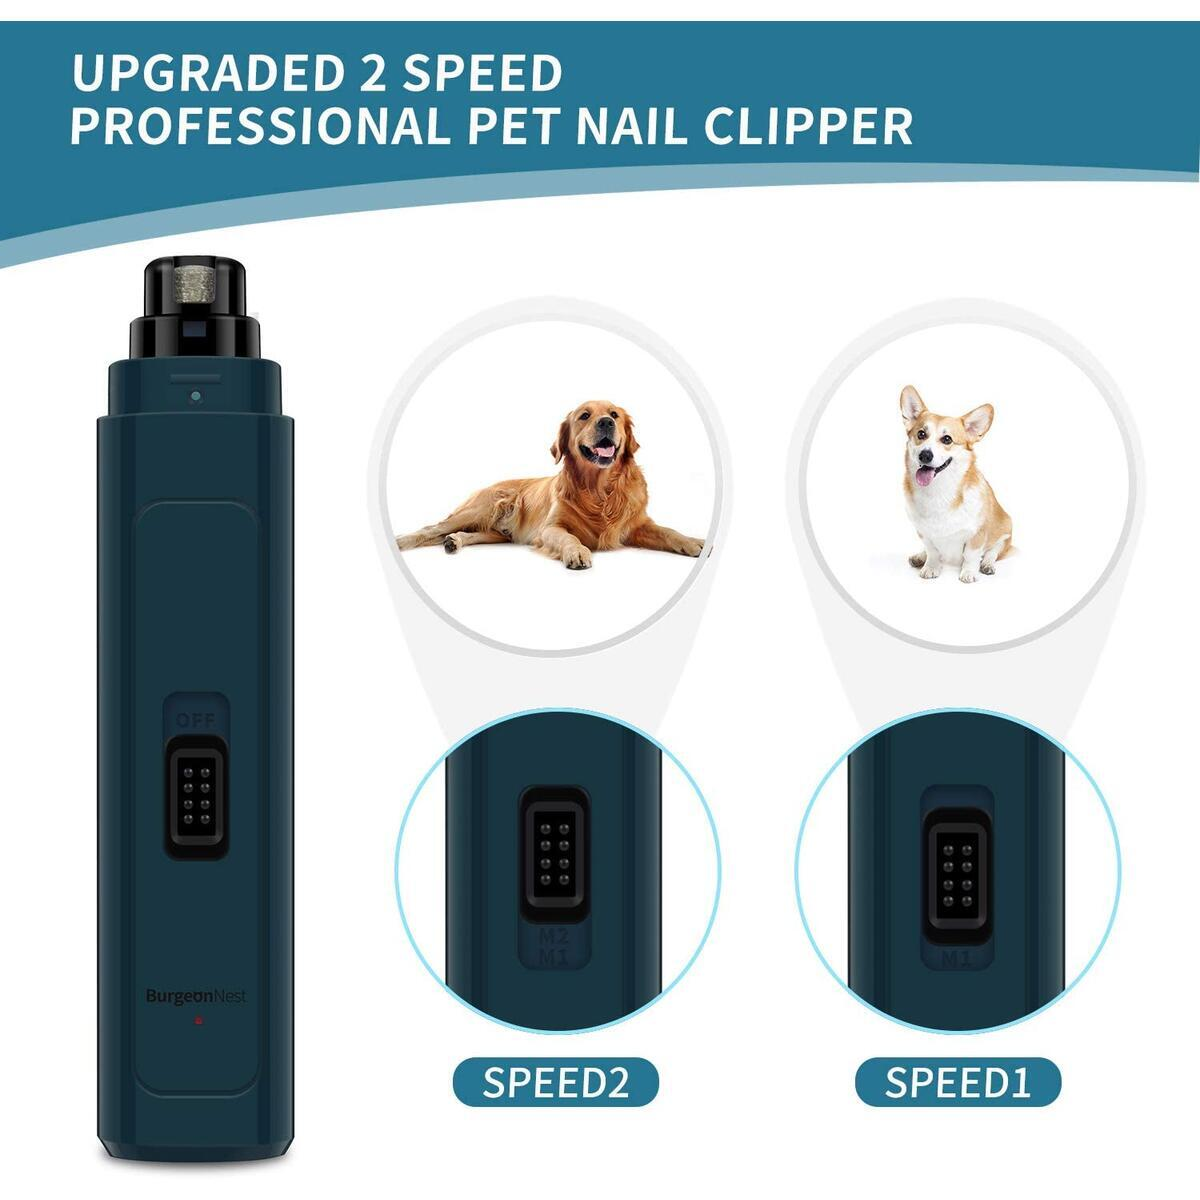 BurgeonNest Dog Nail Grinder Upgraded, 2-Speed Powerful Rechargeable Pet Nail Trimmers Clippers Quiet Electric Painless Paws Grooming & Smoothing for Small Medium Large Dogs & Cats